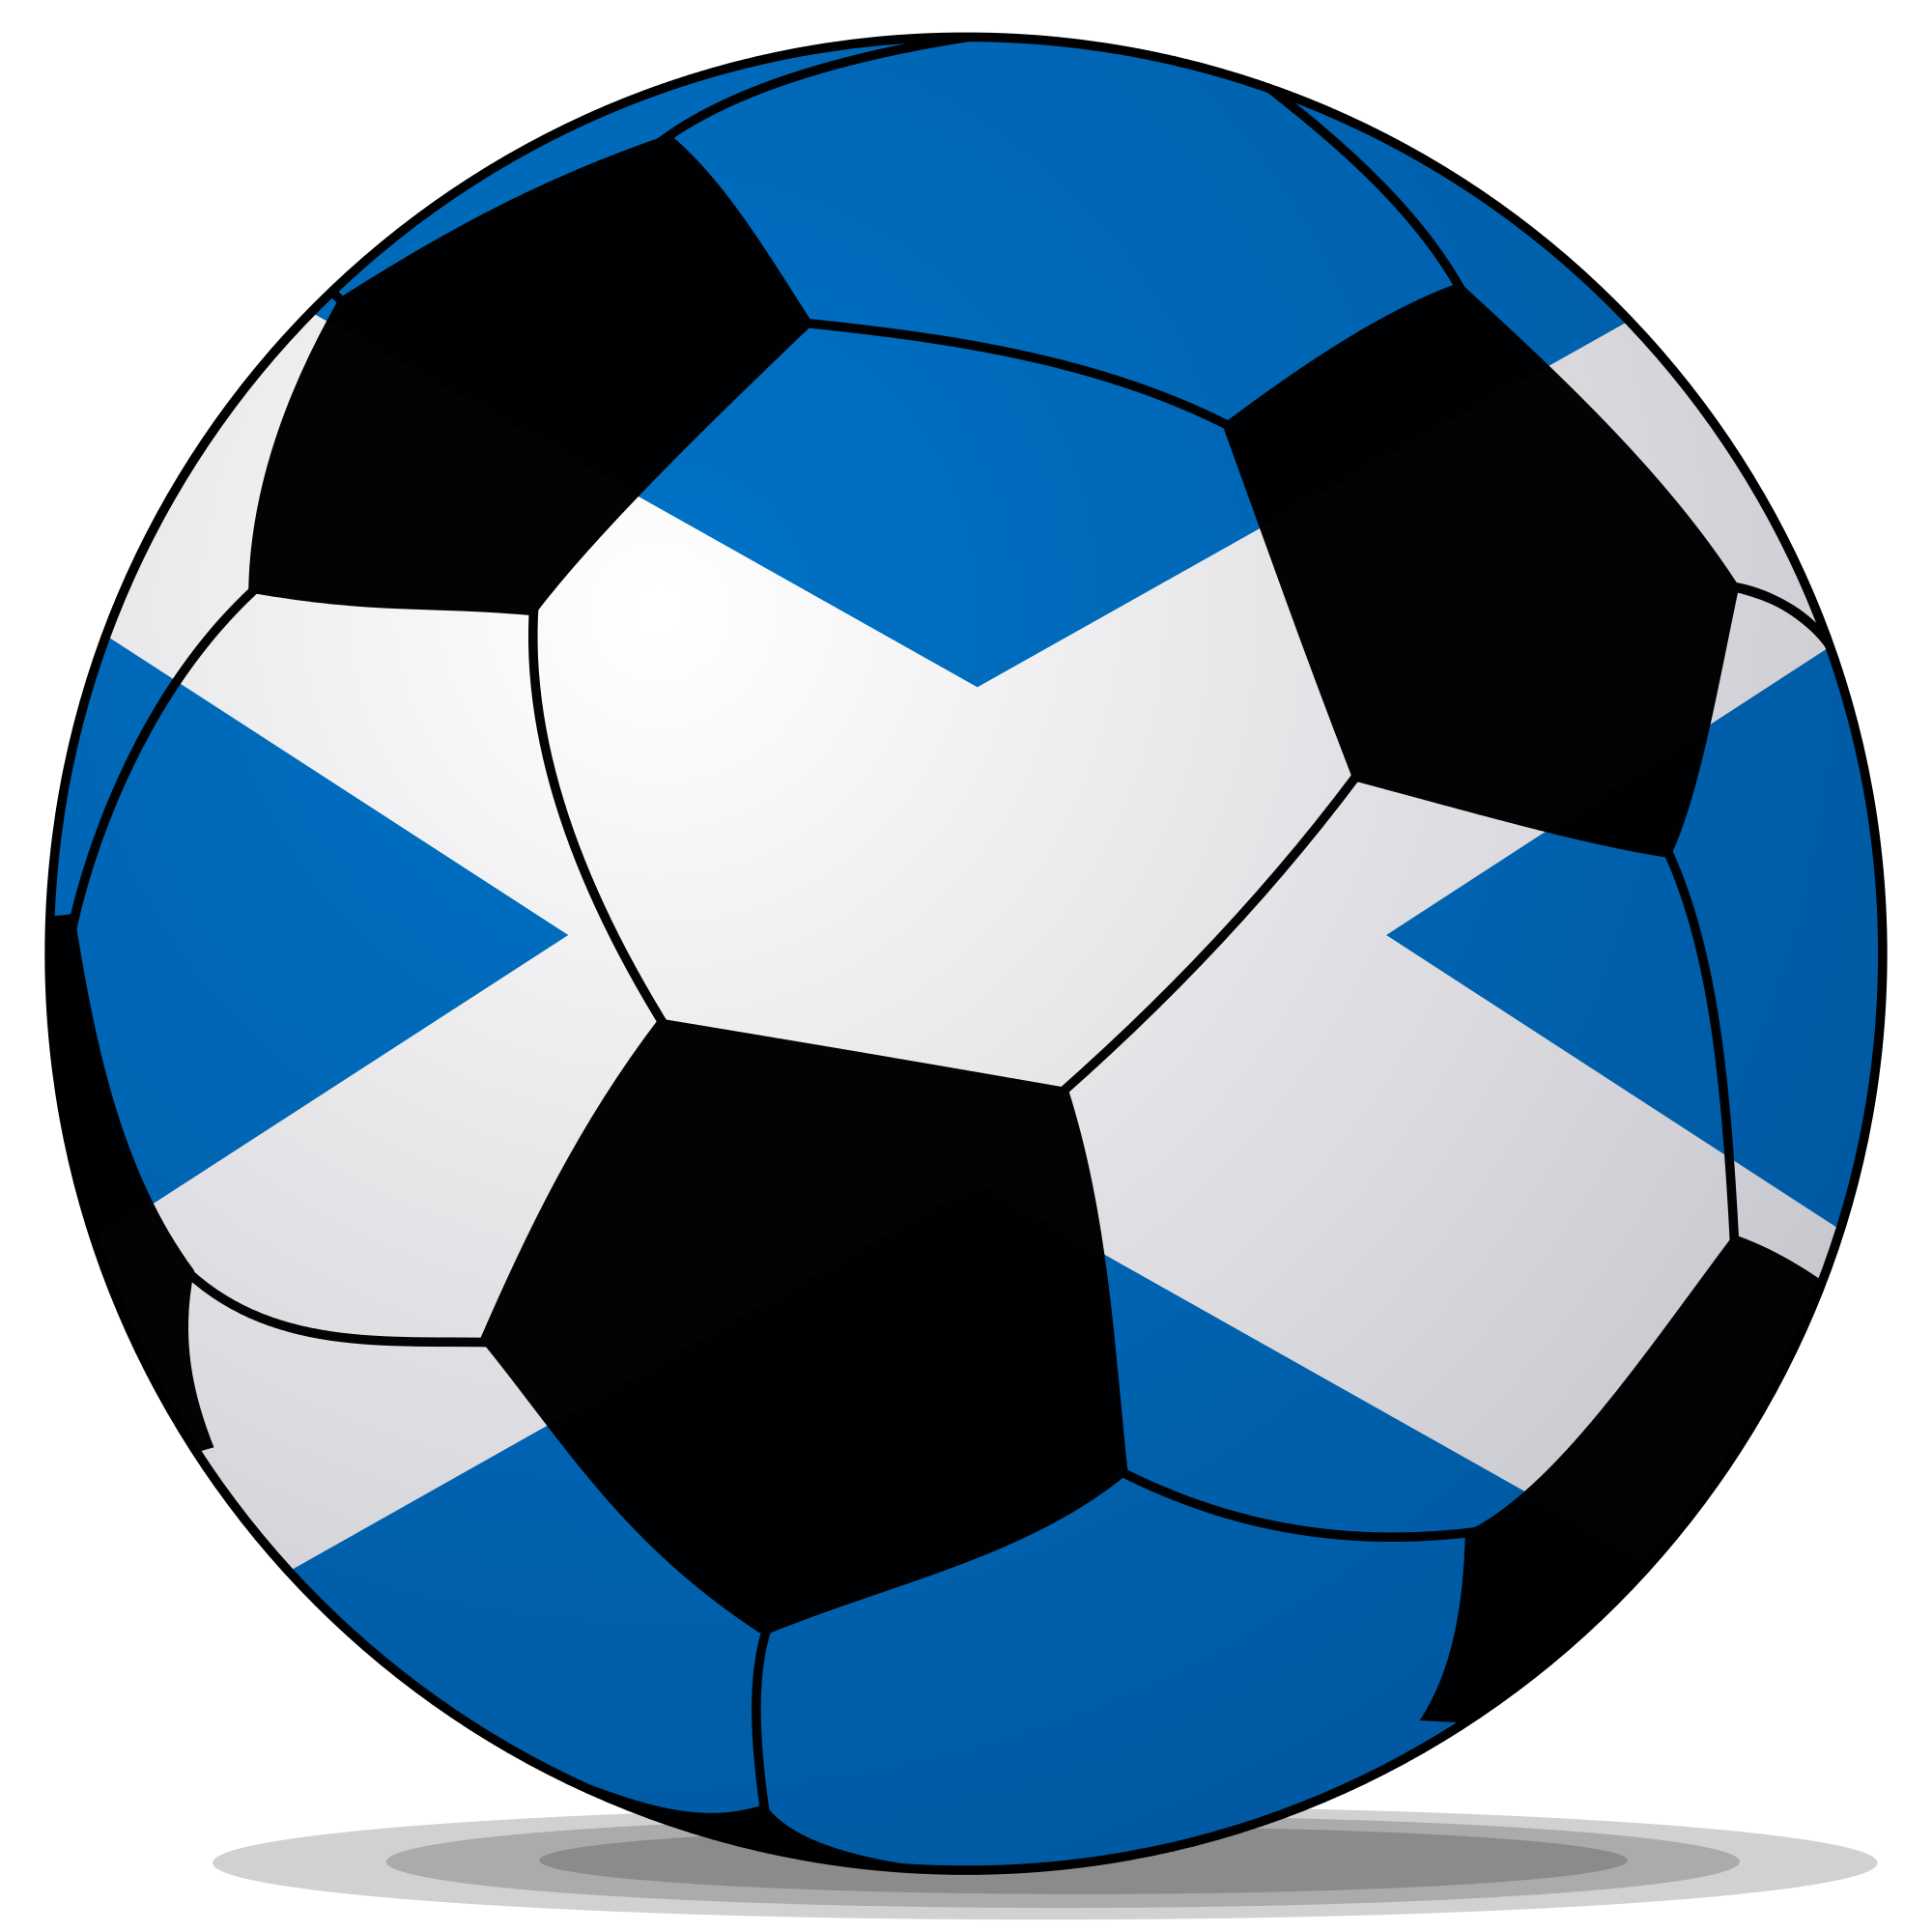 Football clipart blue. Png images ball